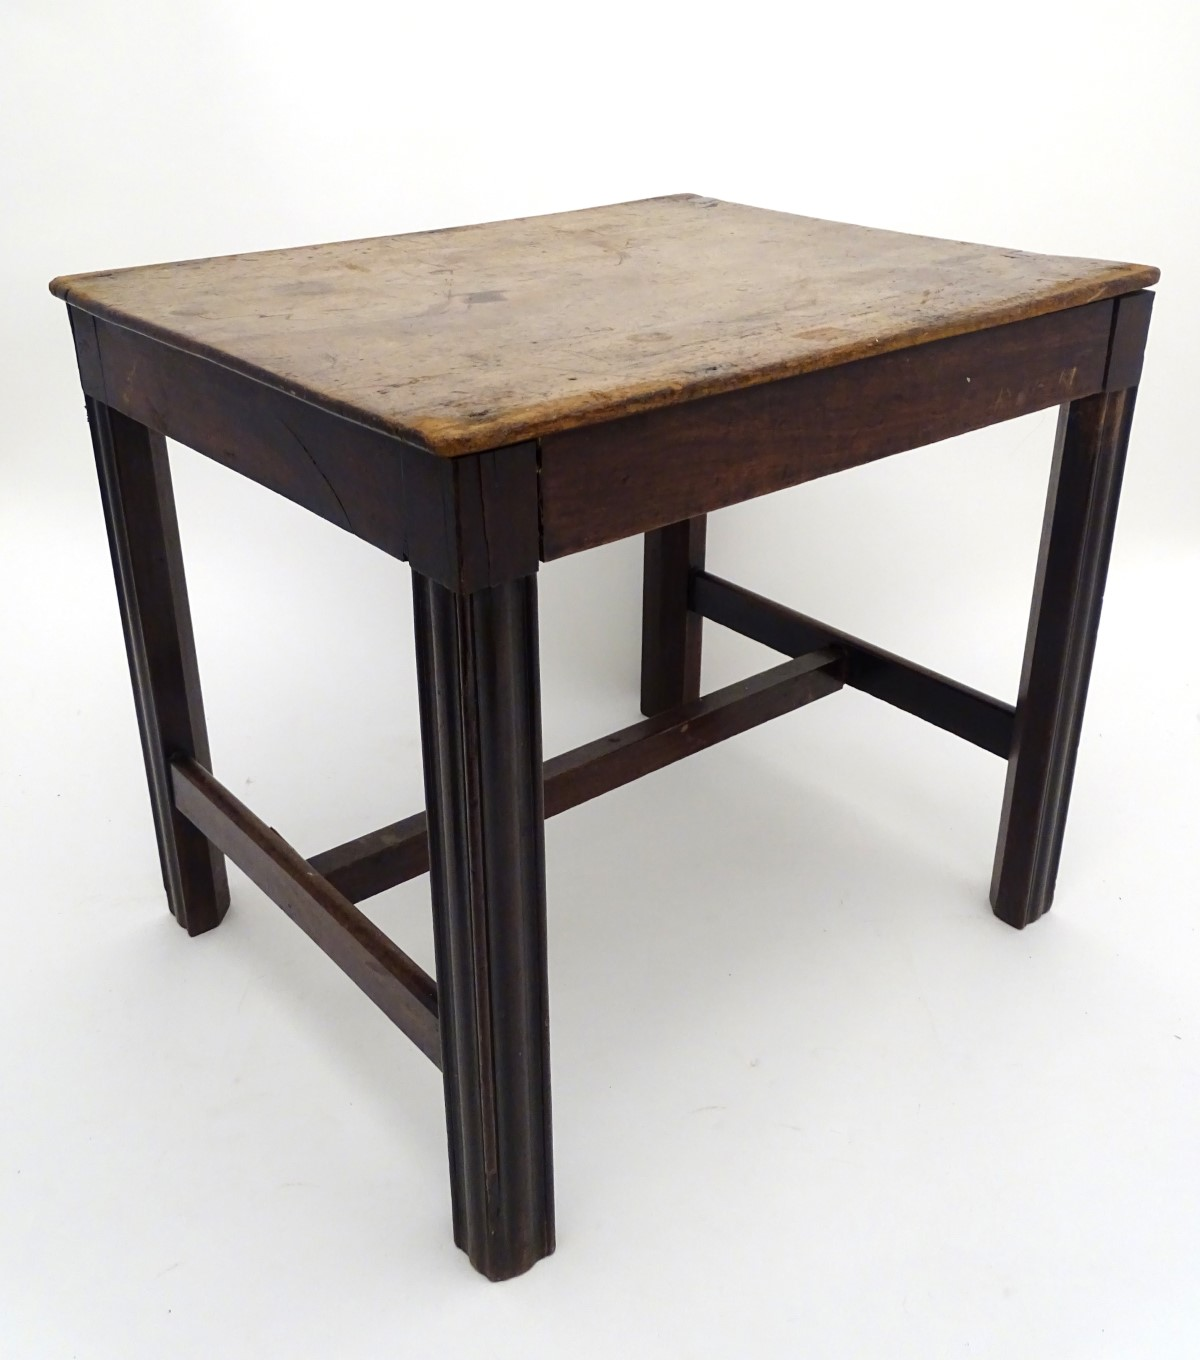 A late 18thC mahogany low table / stool with moulded legs and a chamfered frame, - Image 5 of 7